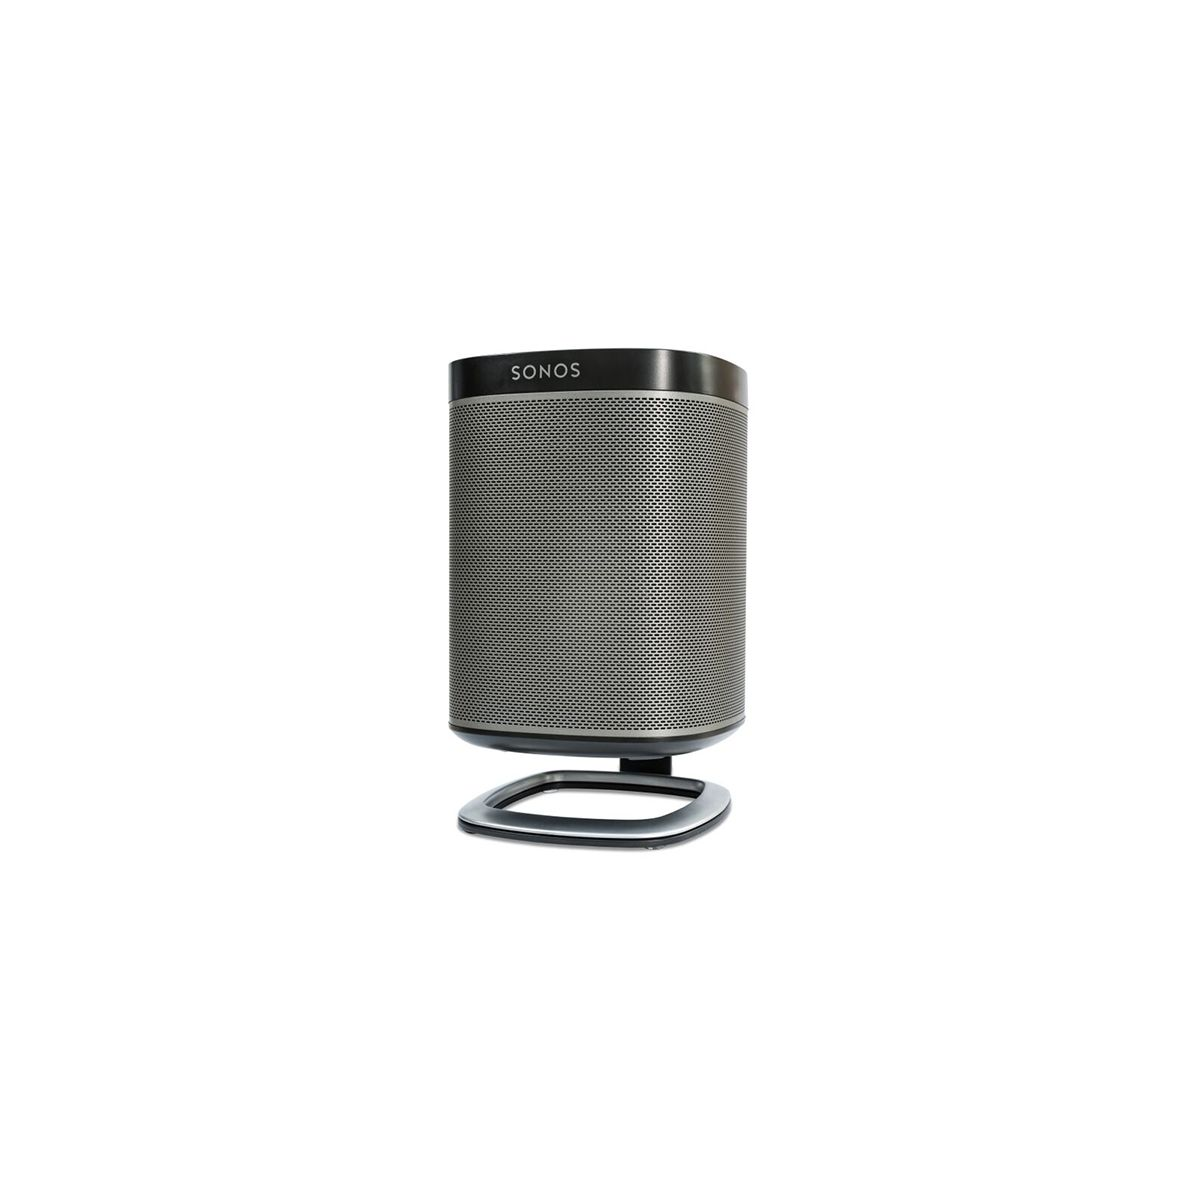 Pied d'enceinte flexson pied sonos play:1 noir (unit�) (photo)